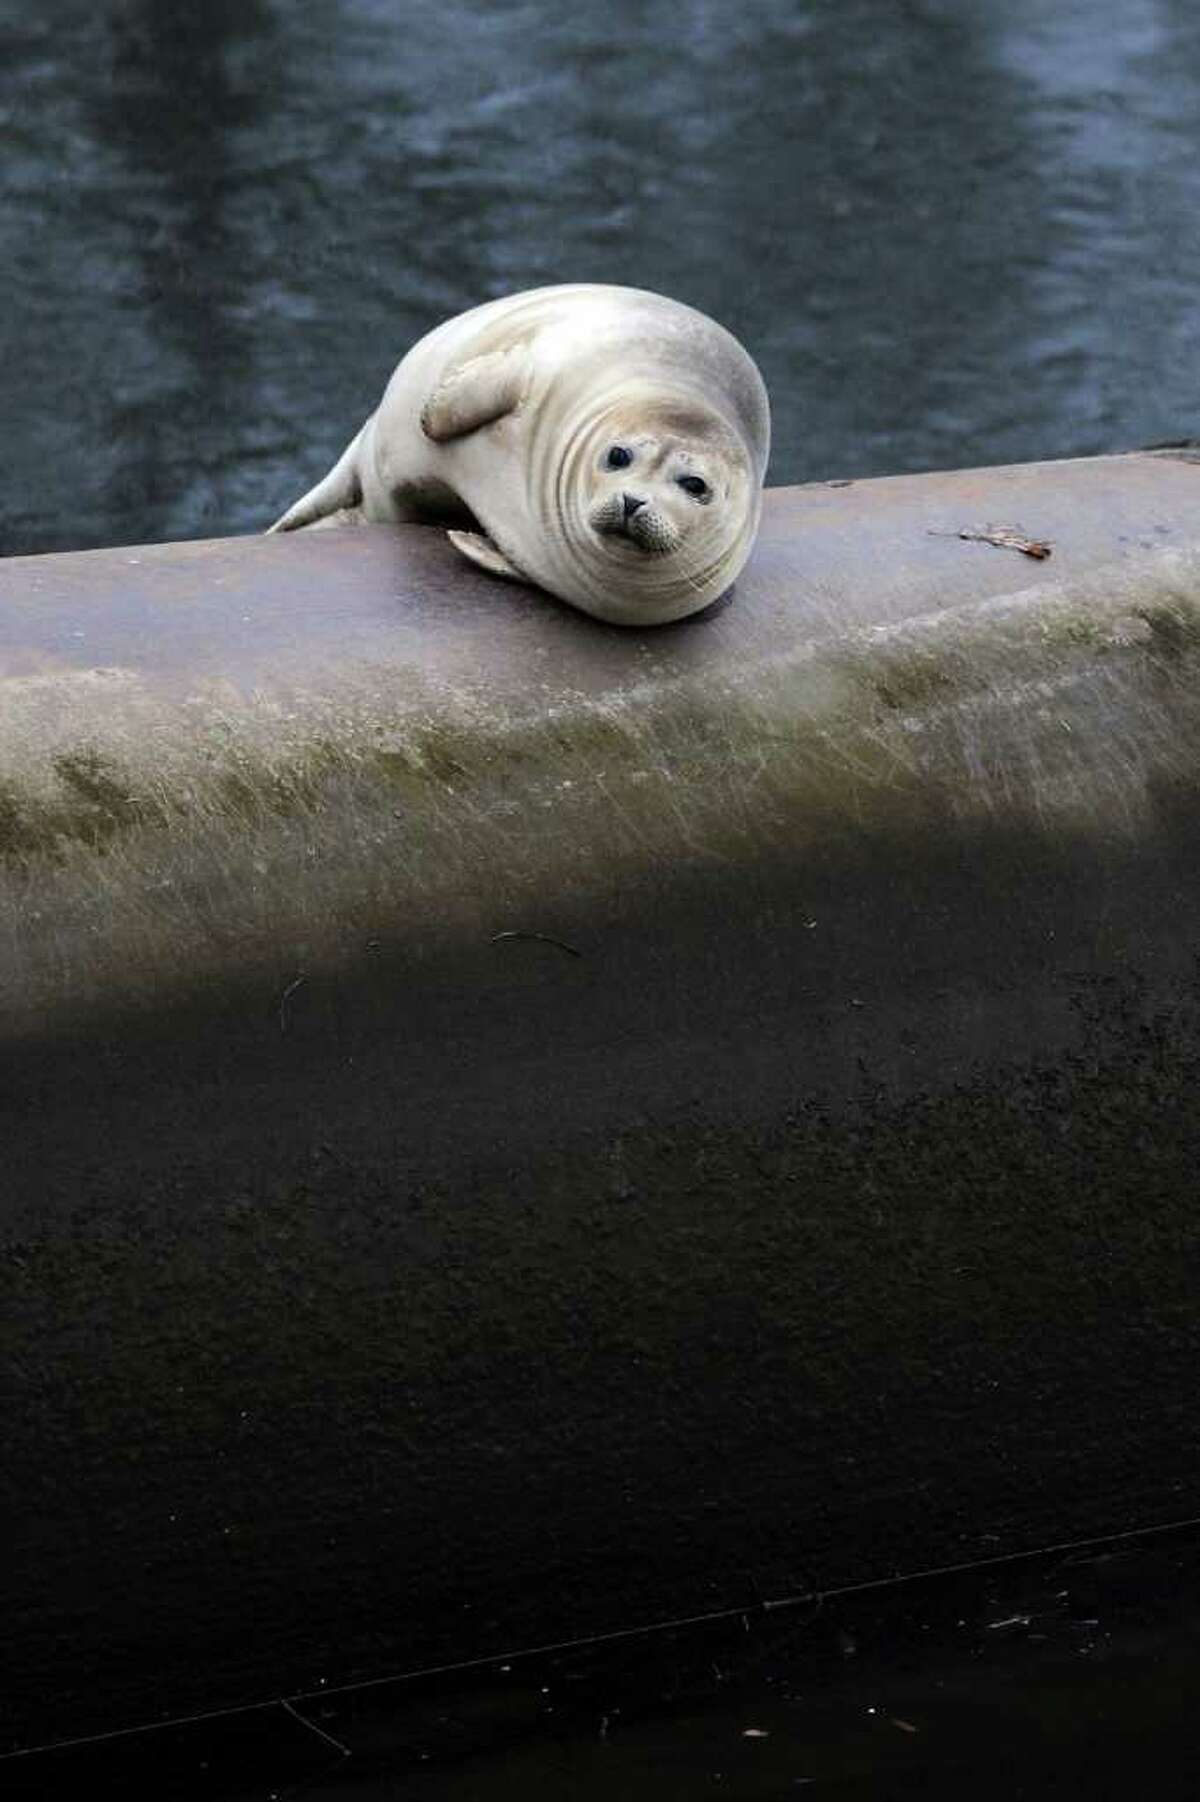 A seal rests on an old cement drain pipe in the Pequonnock River, near River St. in Bridgeport, Conn. Feb. 3rd, 2010. George Zwally, from nearby Zwally's Hauling, said the seal spent most of Wednesday afternoon on the pipe, and that it finally swam away after the sun went down. Dave Sigworth, spokesman from The Maritime Aquarium in Norwalk, said that seals are common in the waters of Long Island Sound between December and April, and it is not unusual for them to venture up inland waterways, like the Pequonnock, in pursuit of fish. Sigworth also noted that seals are federally protected animals, and that if one is spotted in the wild, it should not be approached or fed.